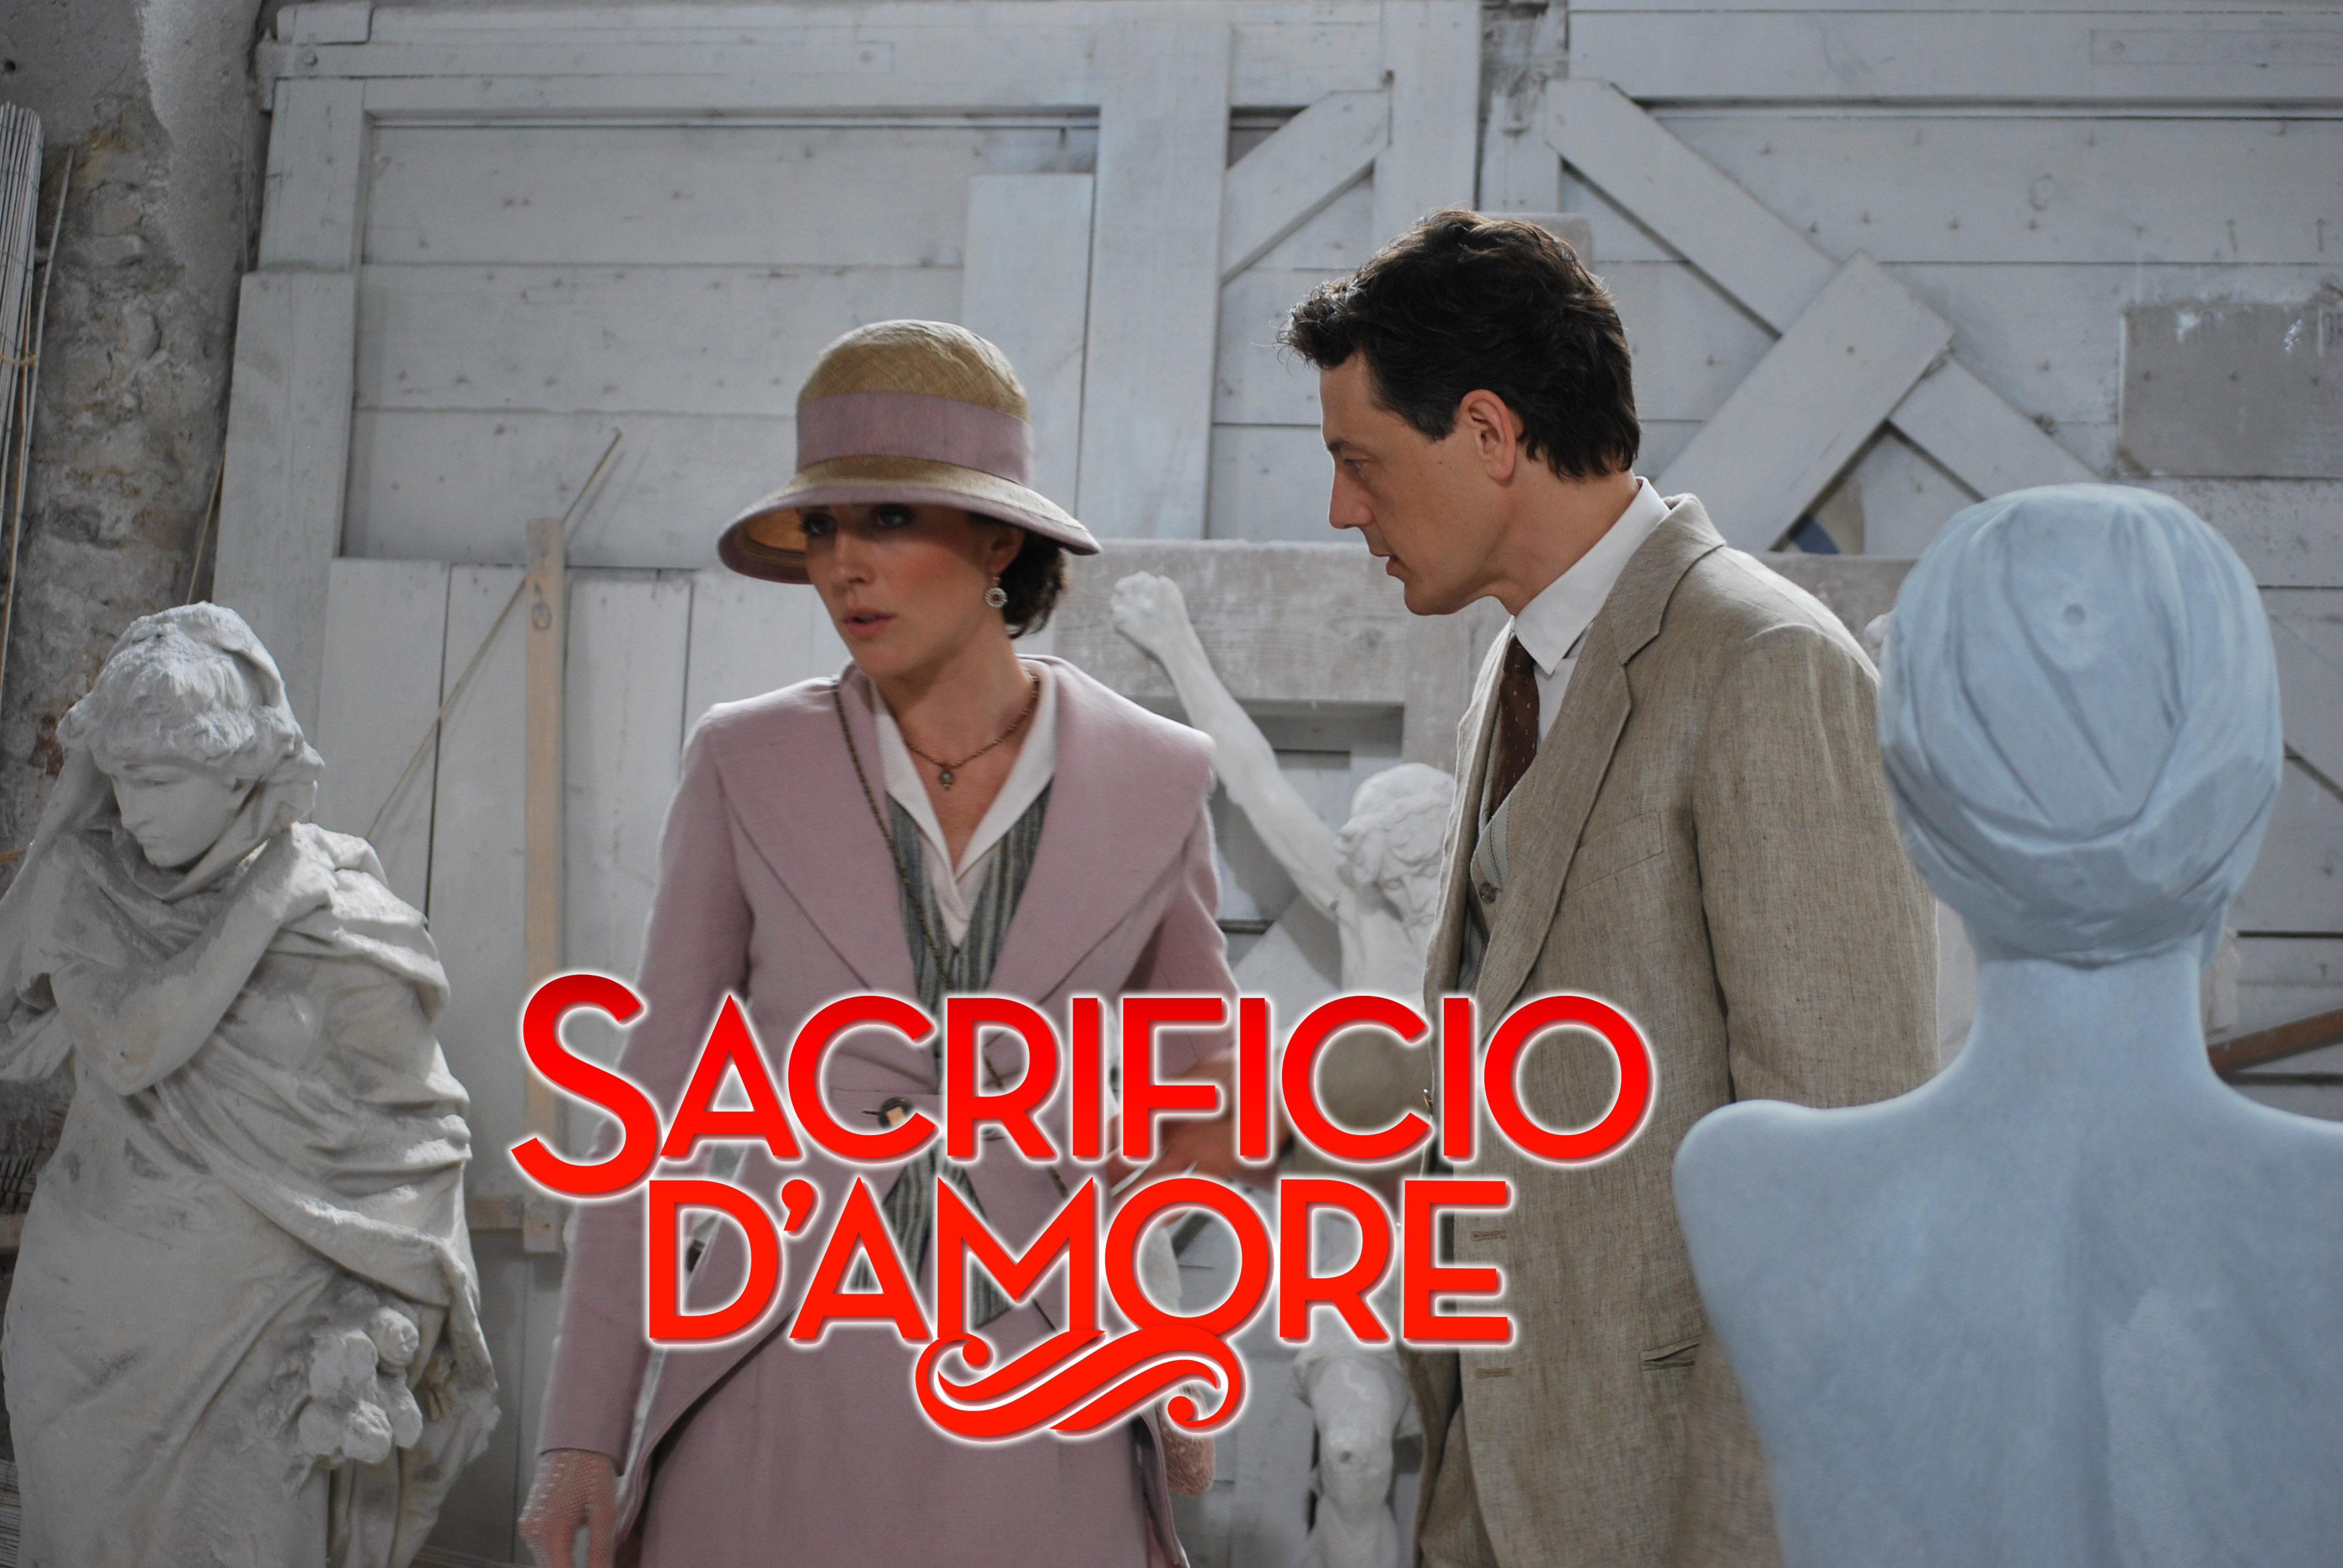 sacrificio d amore - photo #8